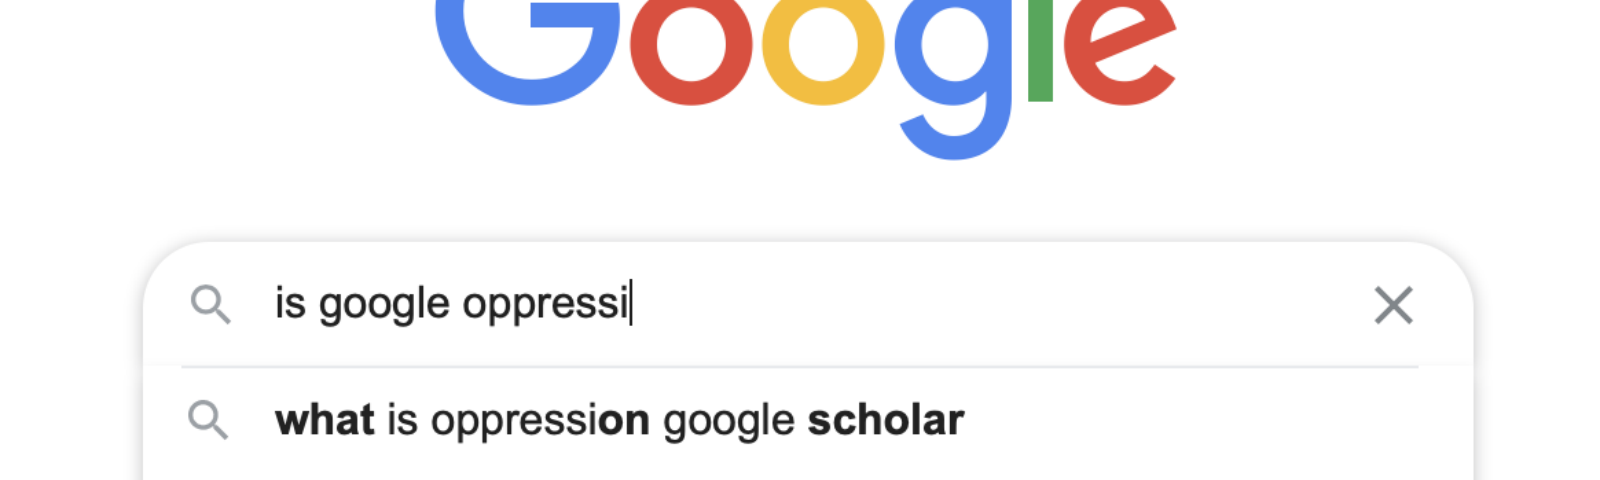 """A screenshot of Google search with the query """"is google oppressi"""" and the suggestion """"what is oppression google scholar"""""""